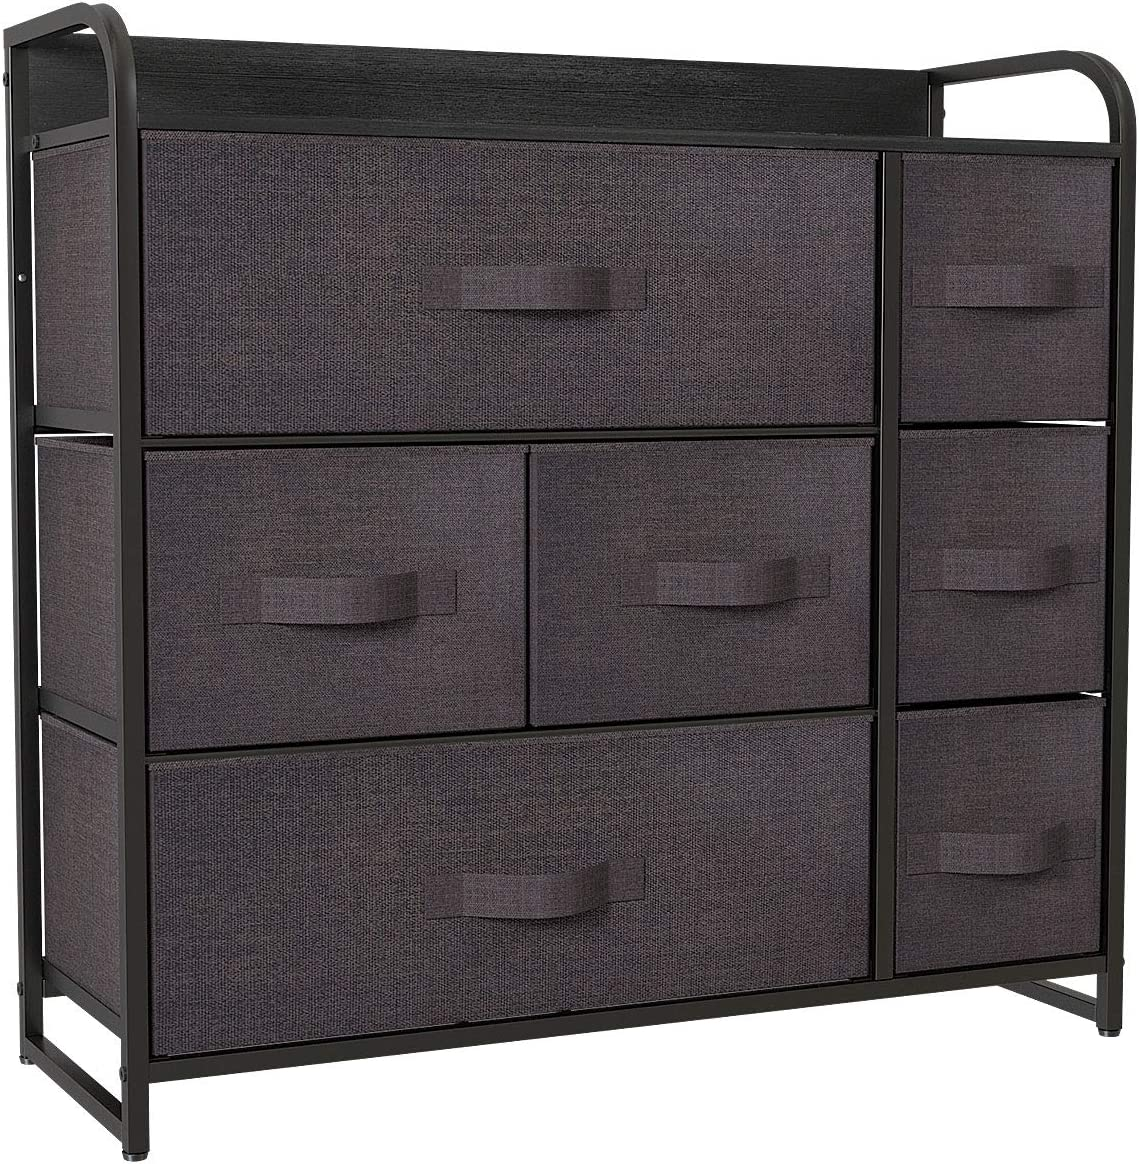 New arrival YITAHOME Fabric Dresser with 7 Storage Safety and trust Larg - Tower Drawers